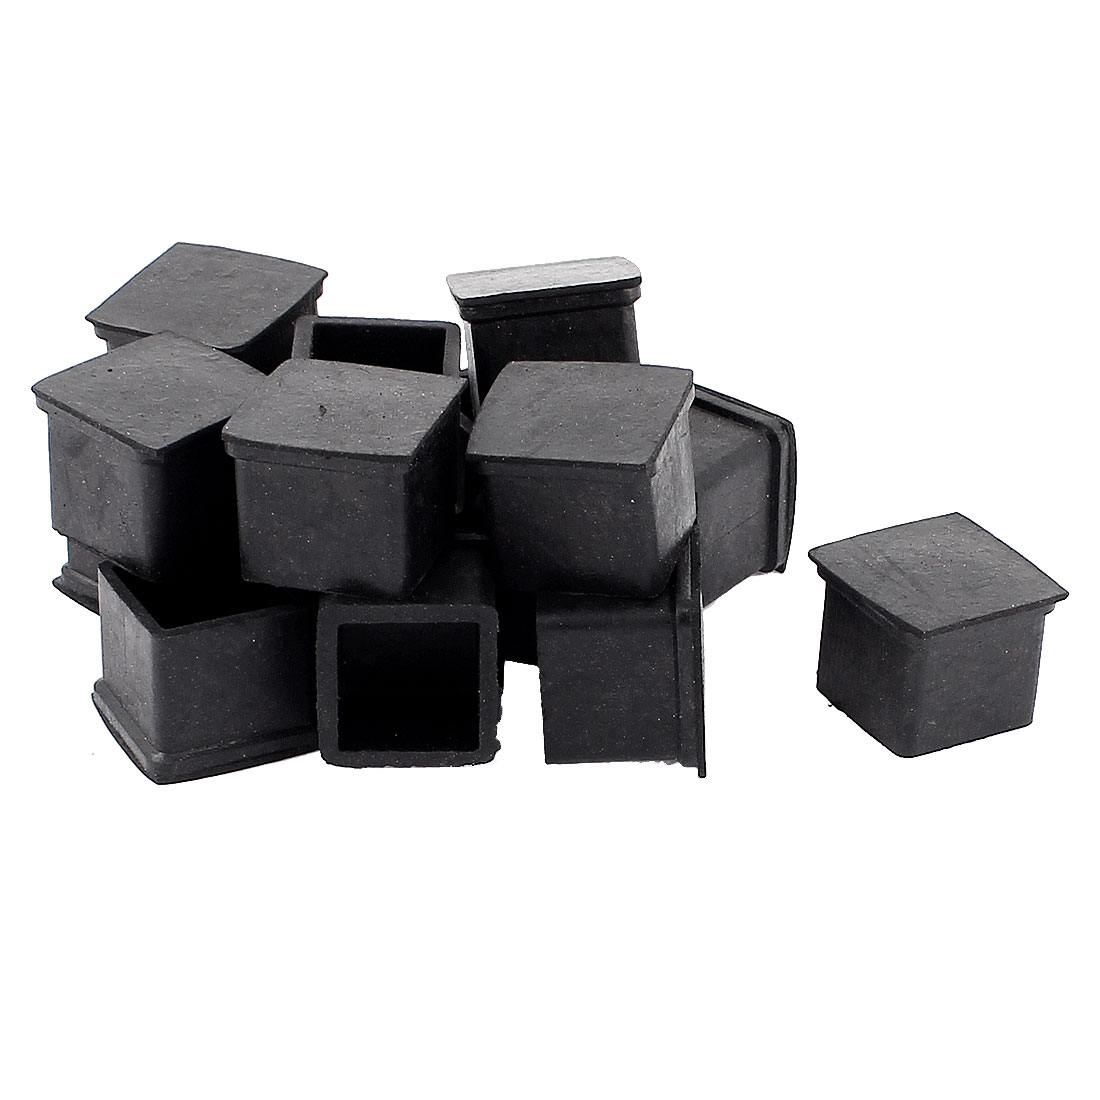 16 Pcs Square Rubber Furniture Table Foot Leg Cover Pad Floor Protector 20mm x 20mm